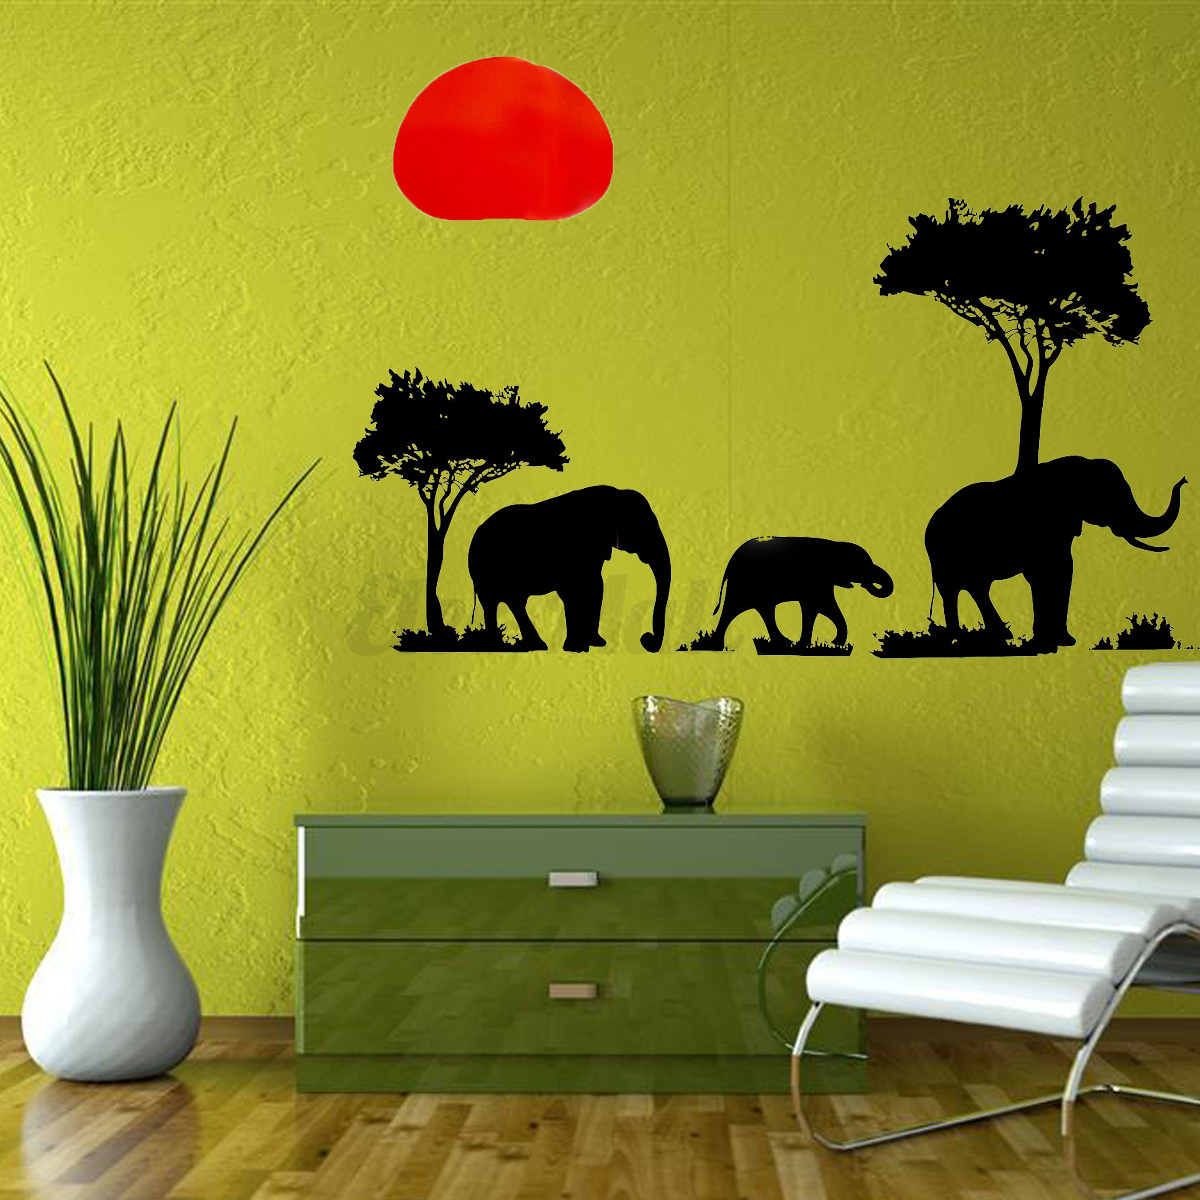 DIY Removable Vinyl PVC Wall Sticker Home Room Decor Mural Home Art ...